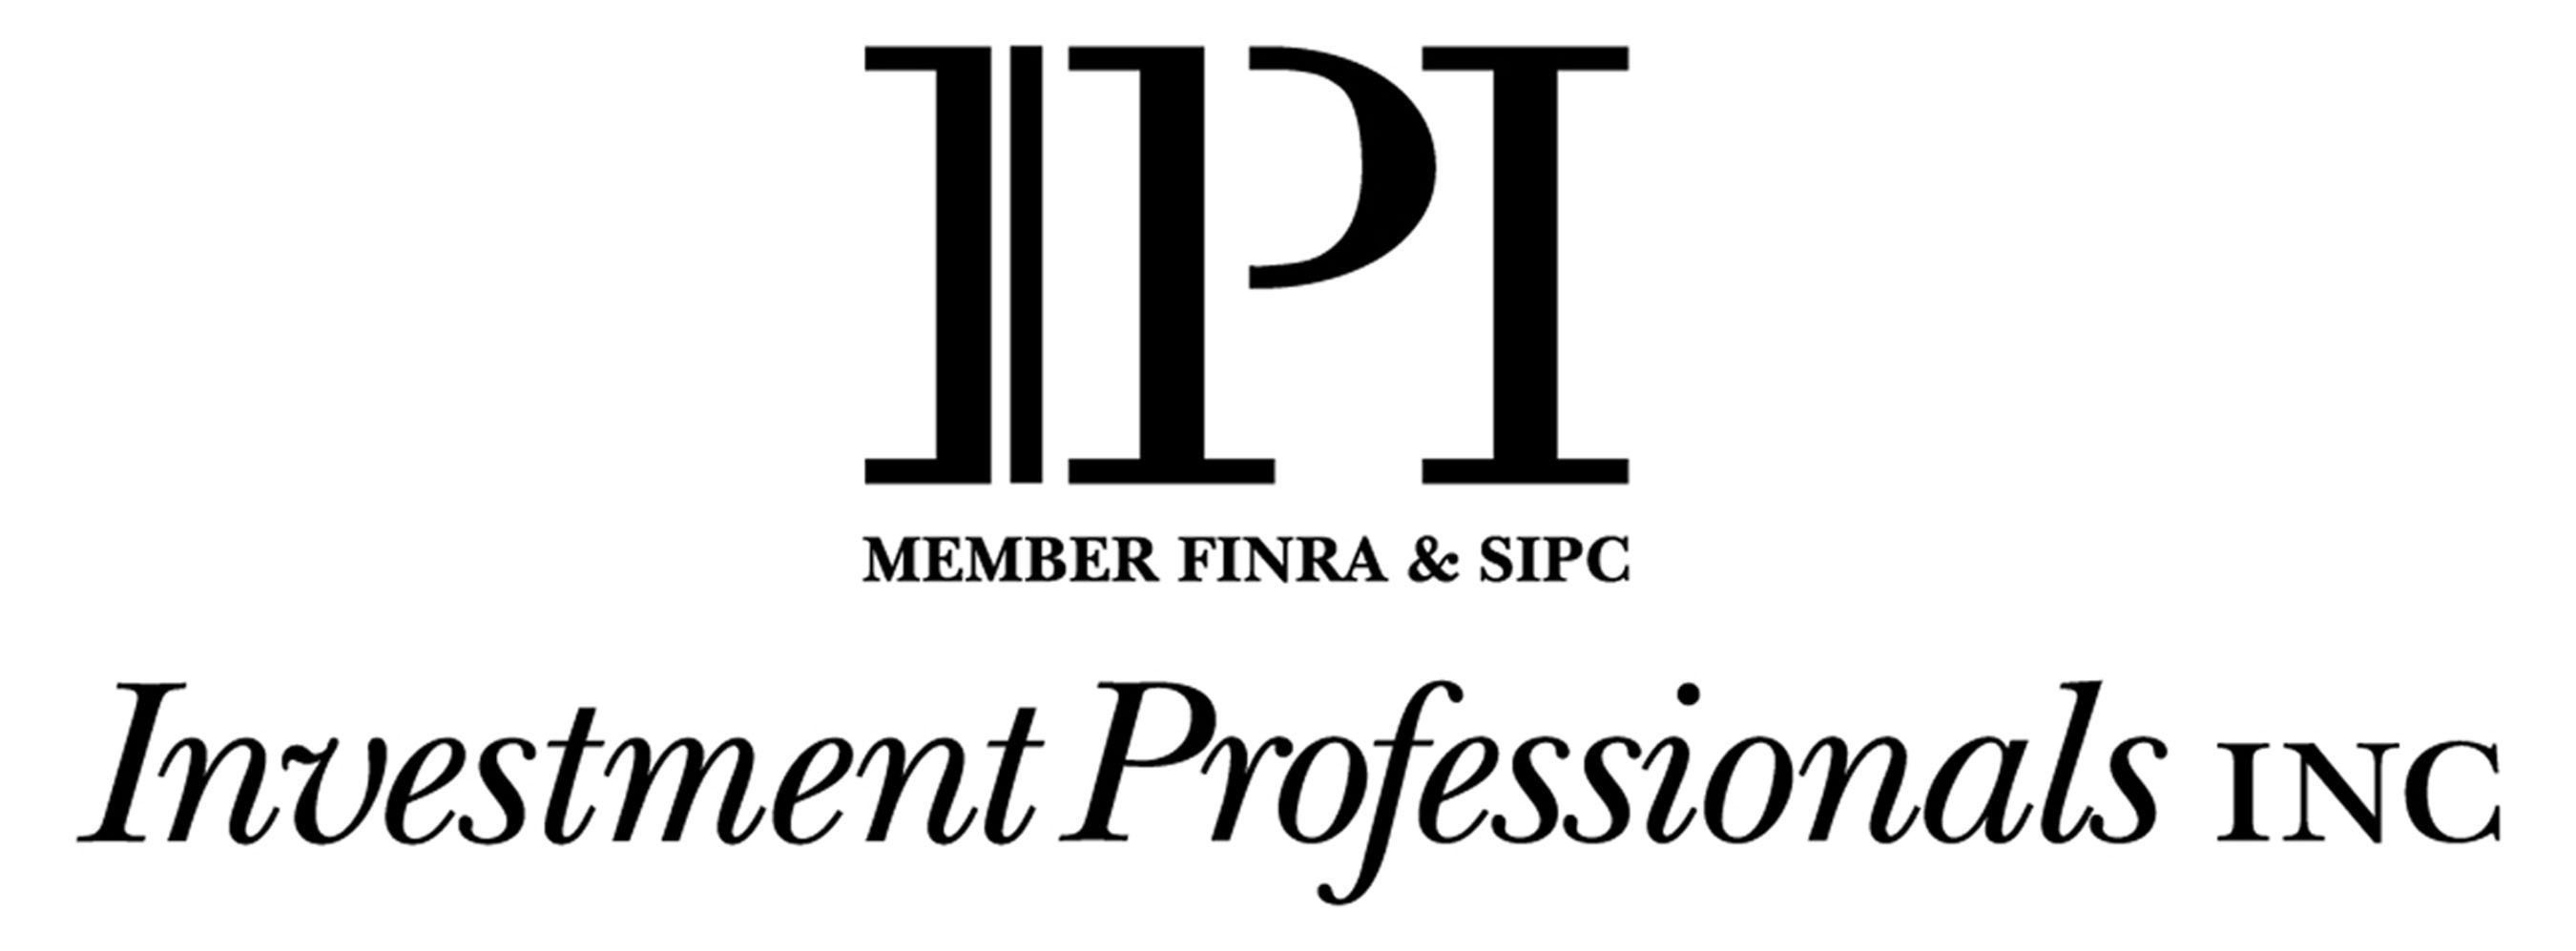 Investment Professionals Inc. Ranked No. 7 in Most